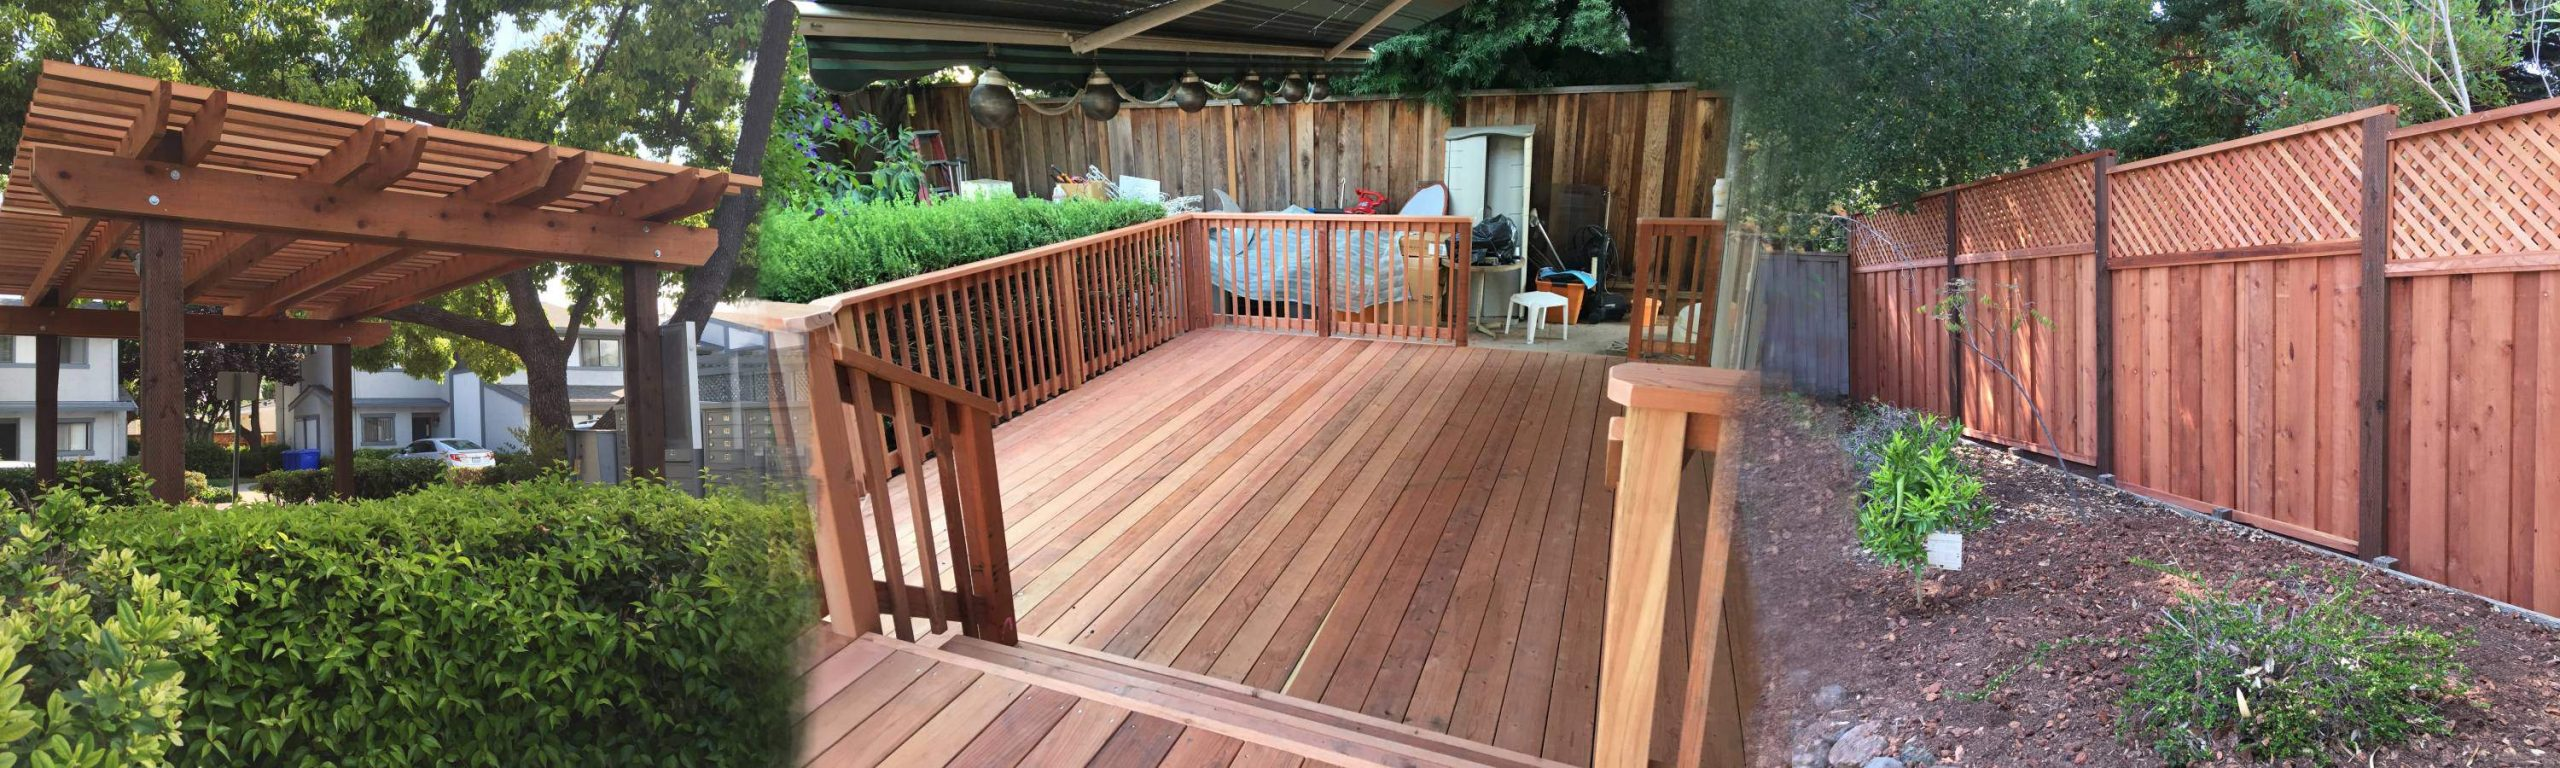 Bay Area Fence & Deck, Inc.